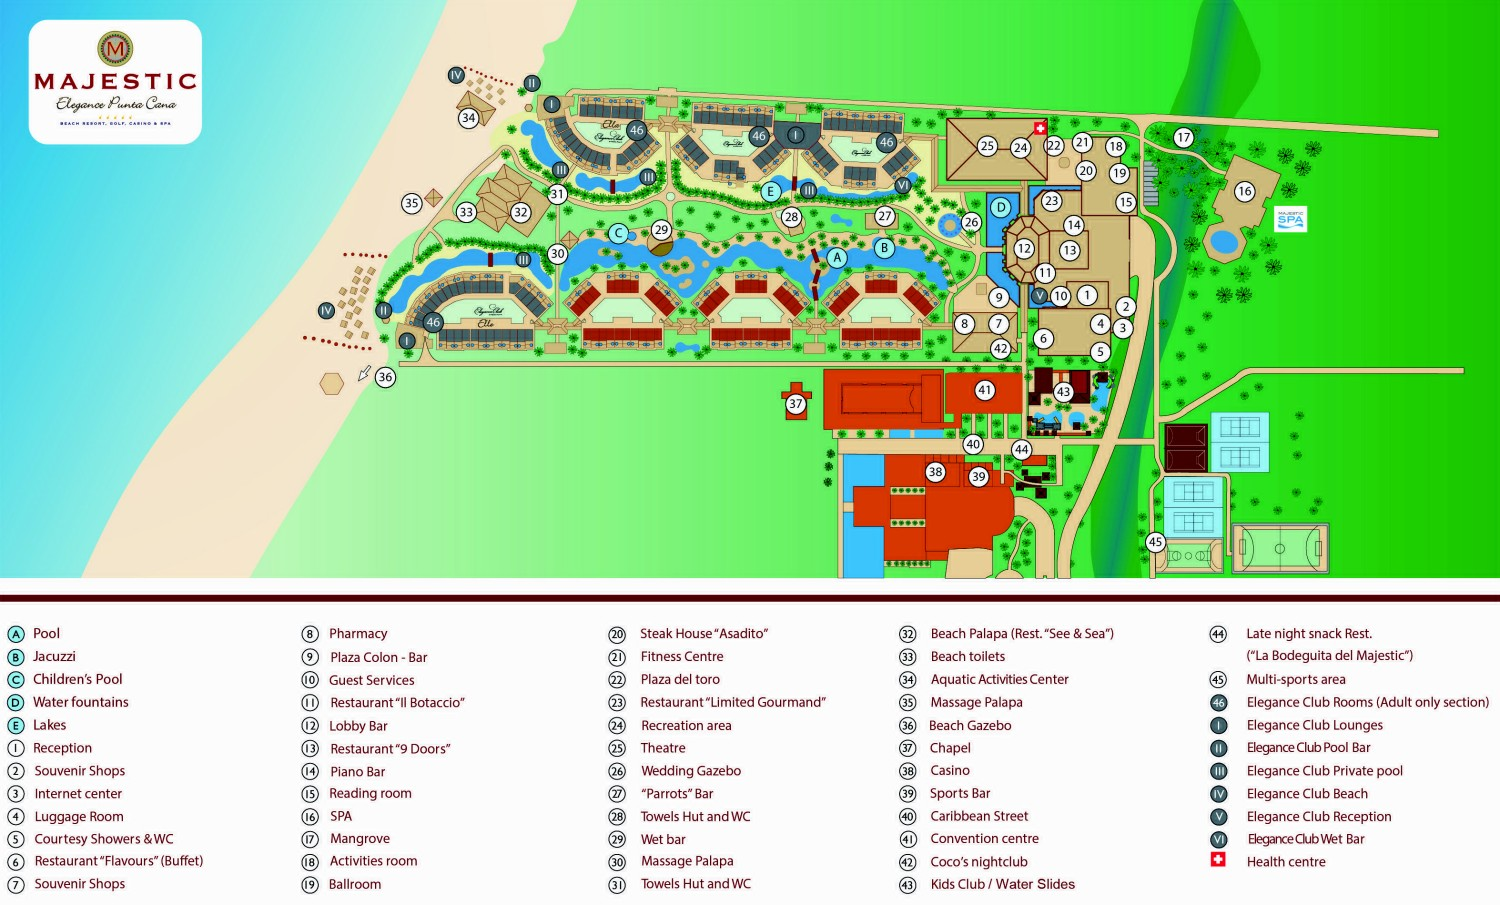 Map of the Resort: www.resortsmaps.com/maps/map-MajesticElegance